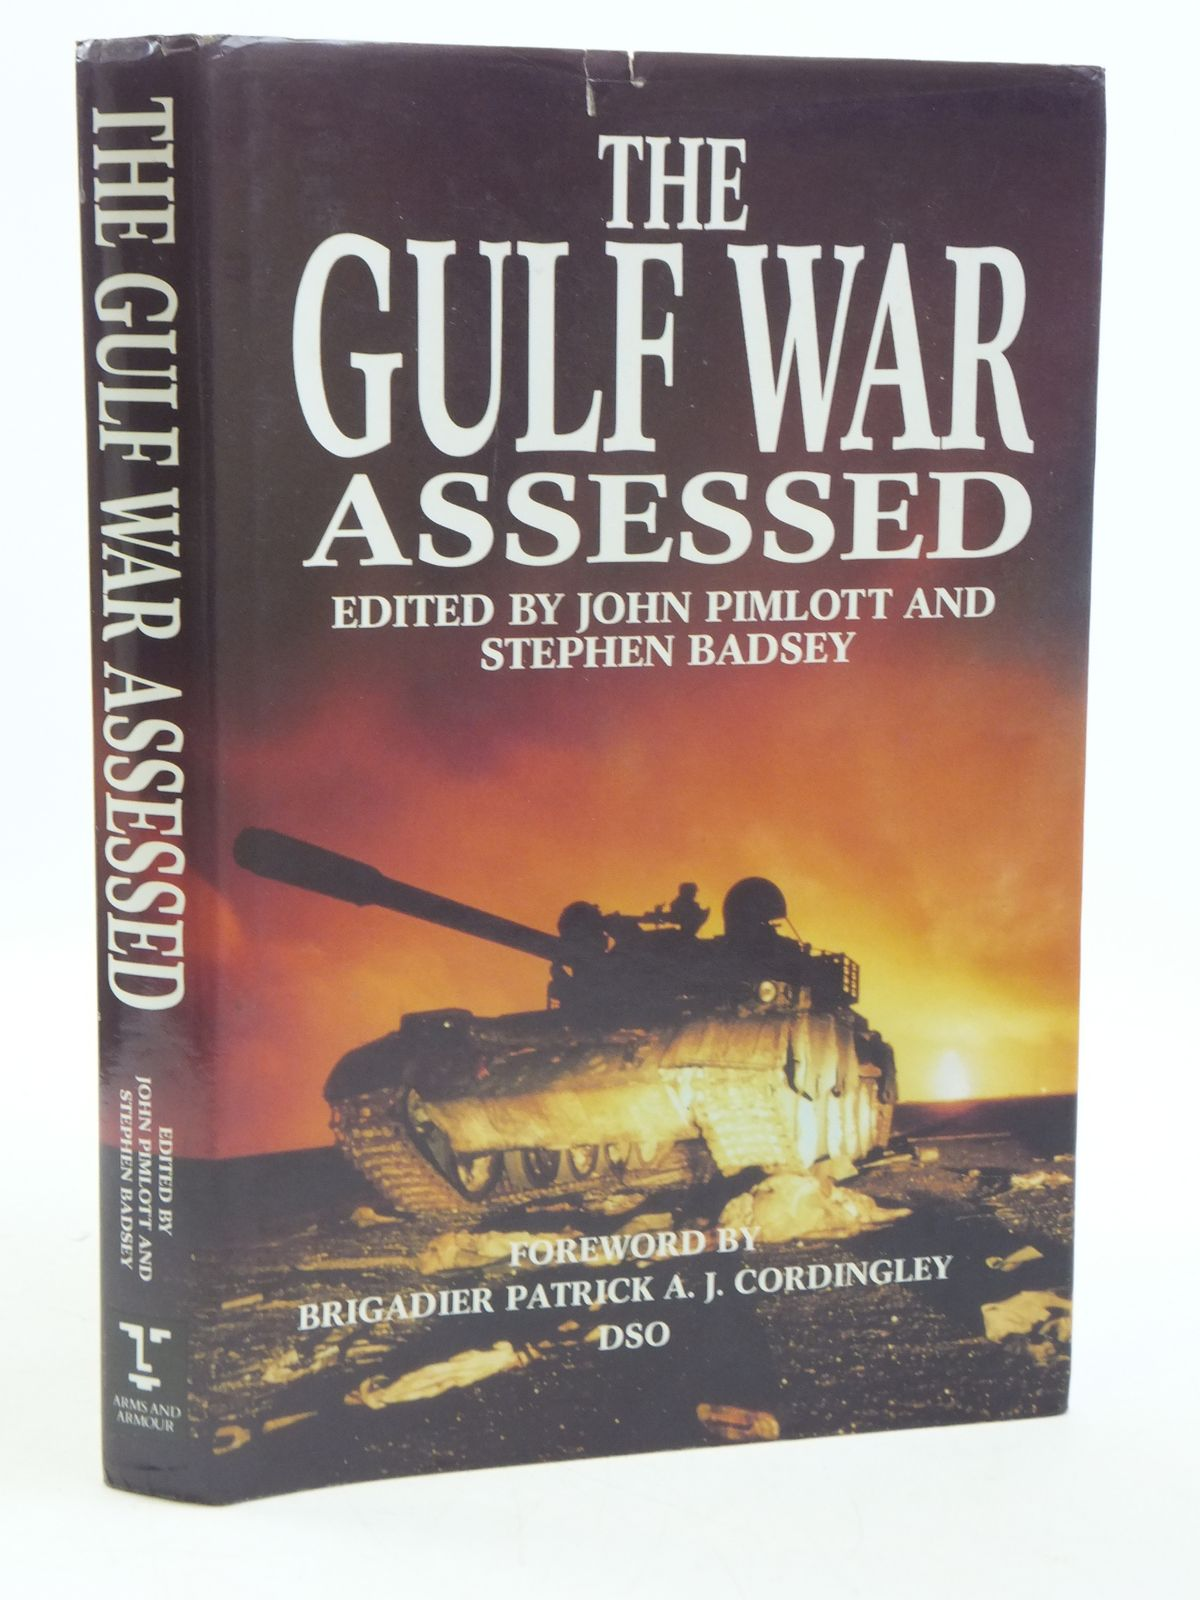 Photo of THE GULF WAR ASSESSED written by Pimlott, John<br />Badsey, Stephen published by Arms & Armour Press (STOCK CODE: 1604779)  for sale by Stella & Rose's Books